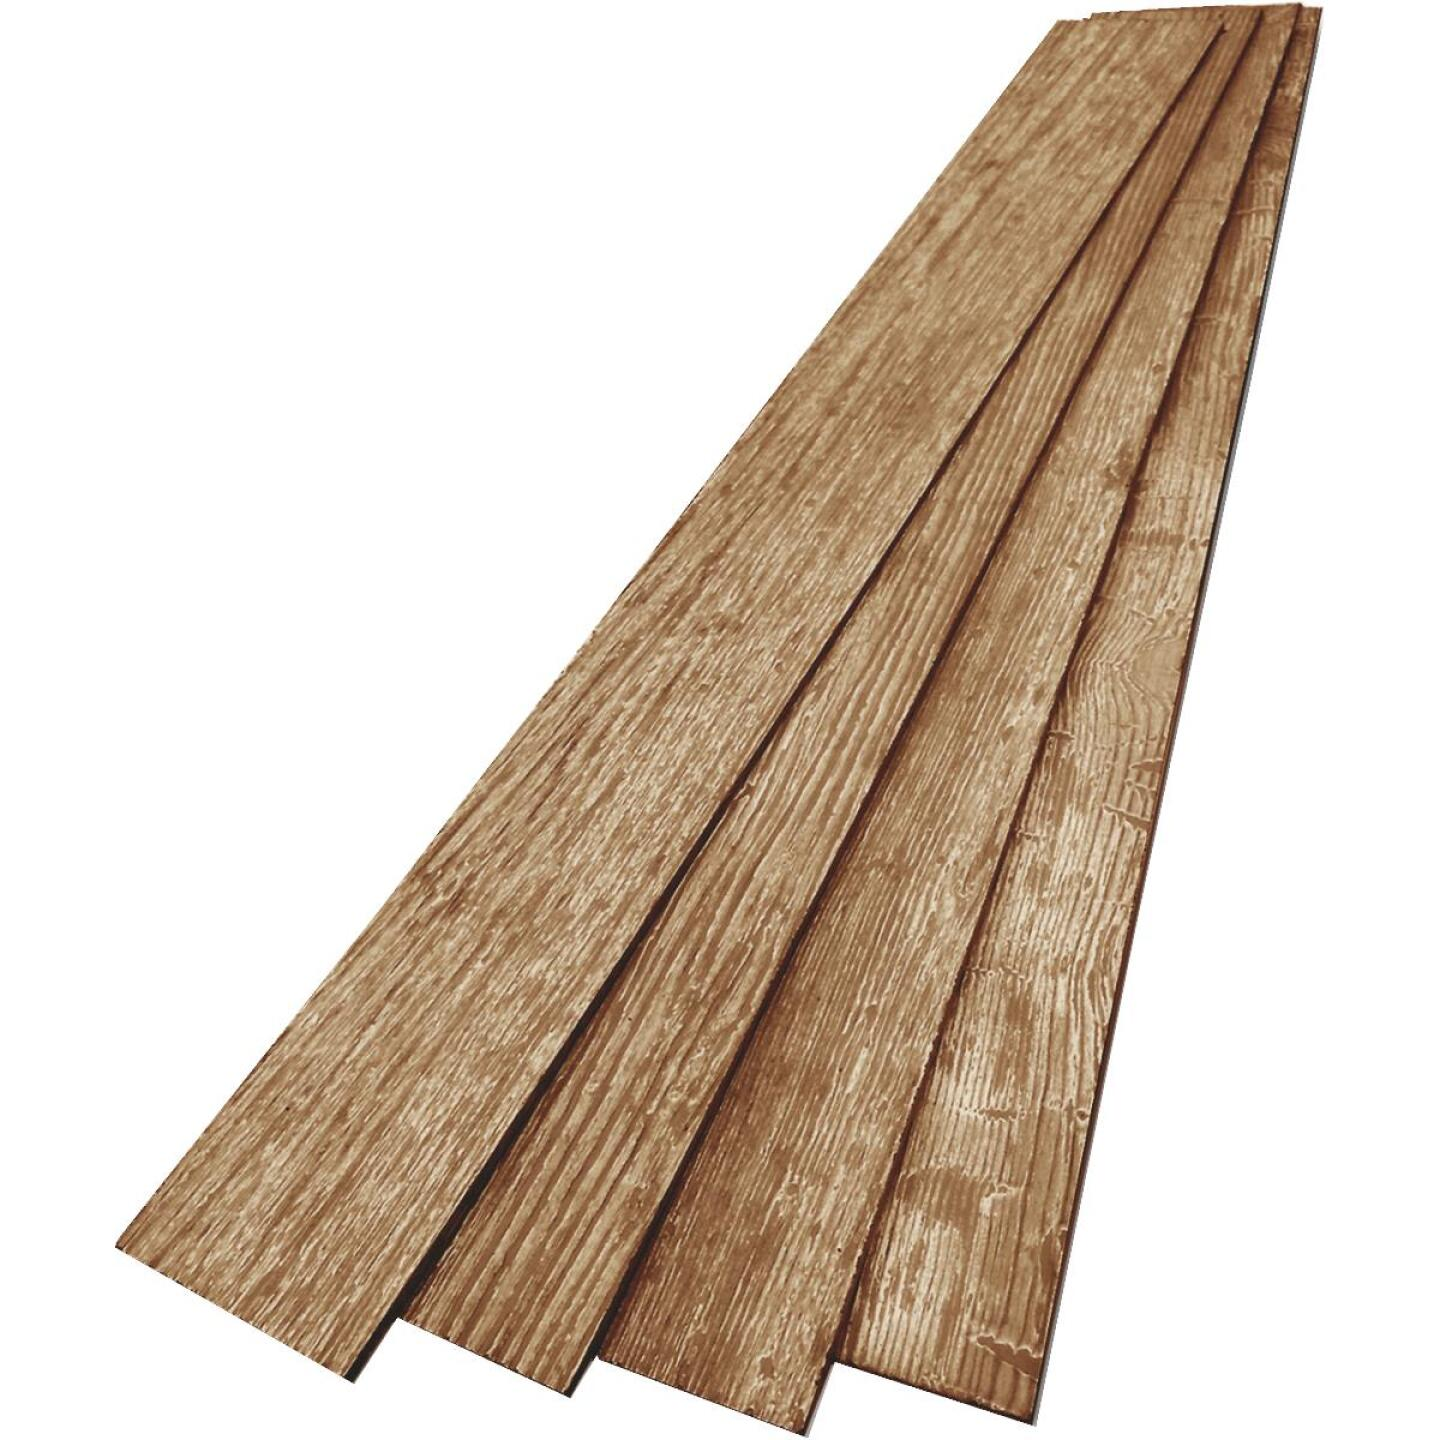 DPI 6 In. W. x 48 In. L. x 1/4 In. Thick Espresso Rustic Wall Plank (12-Pack) Image 2